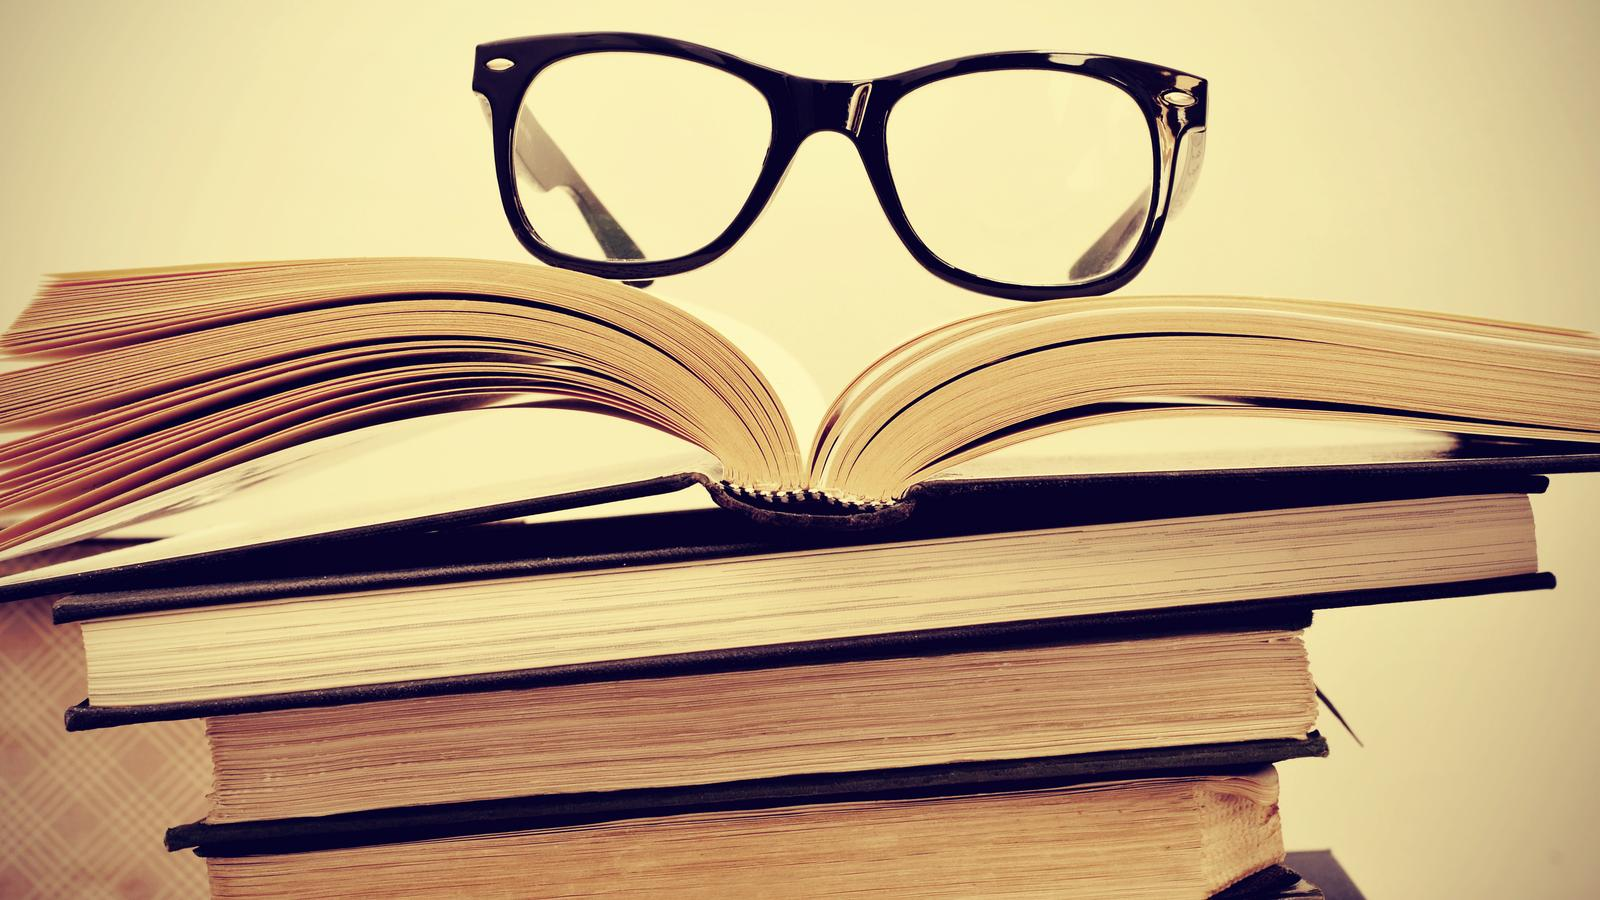 book nerd by diedphotography - photo #36